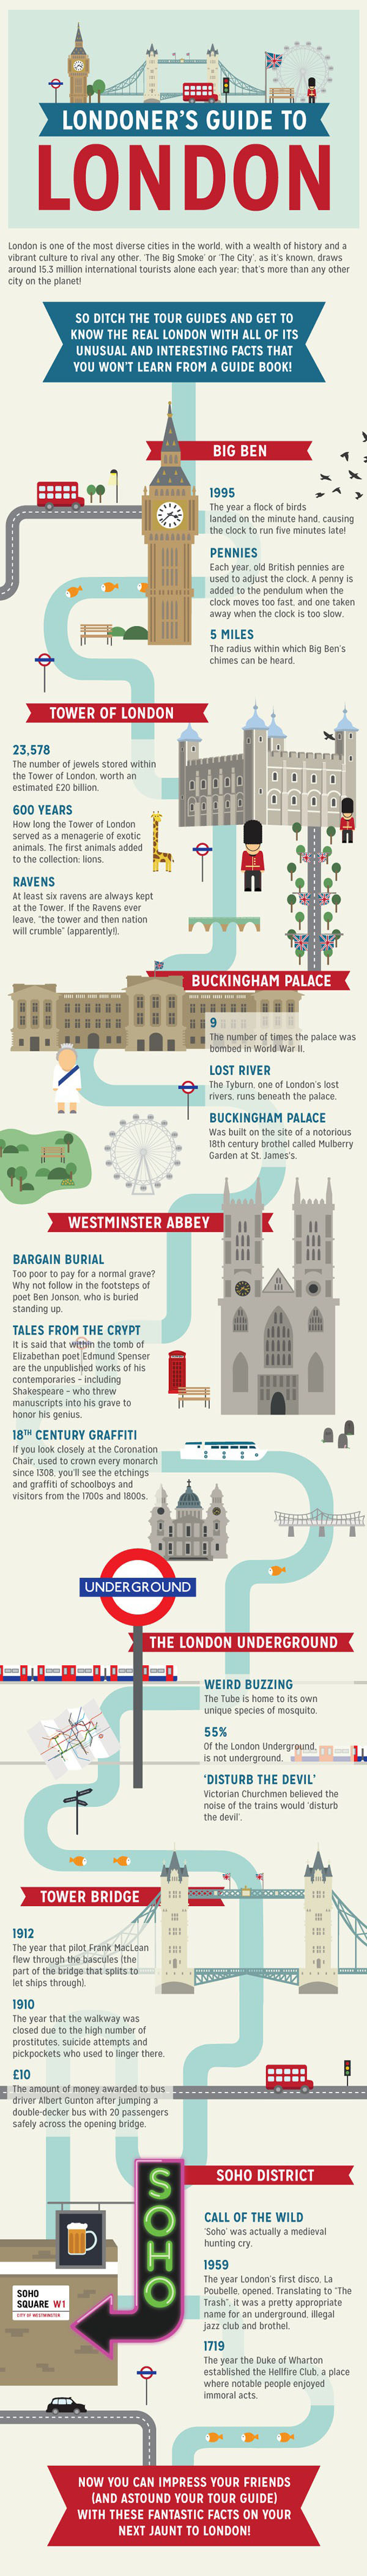 This Is What You Need To Know If You're Going To London (infographic)